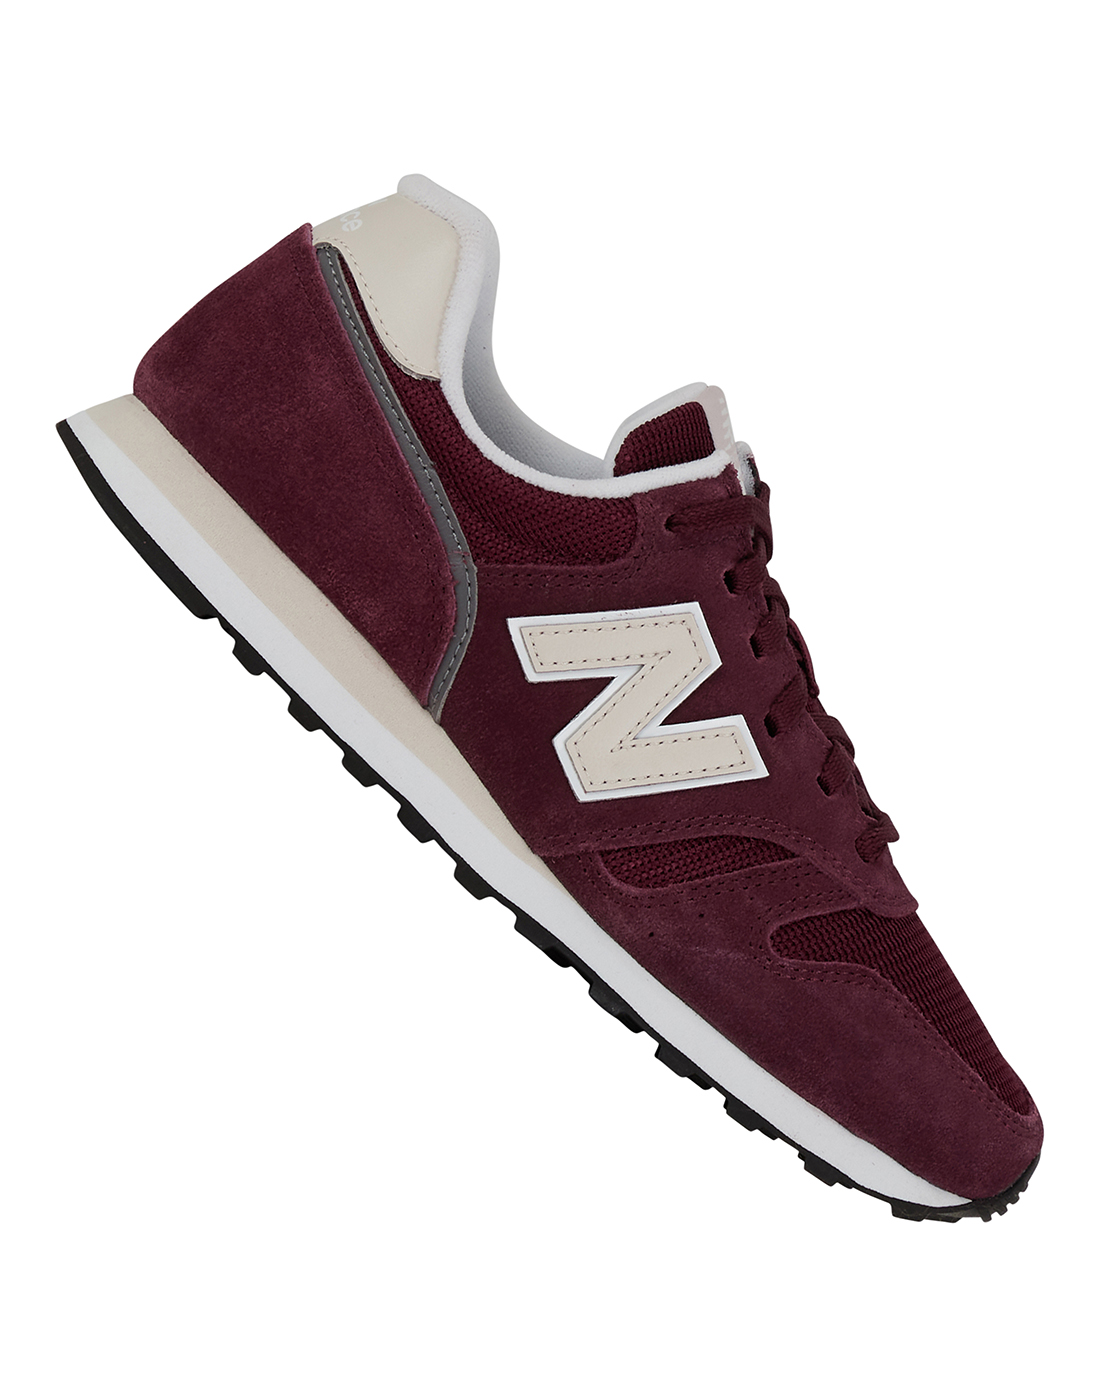 New Balance Womens 373 Trainers - Red